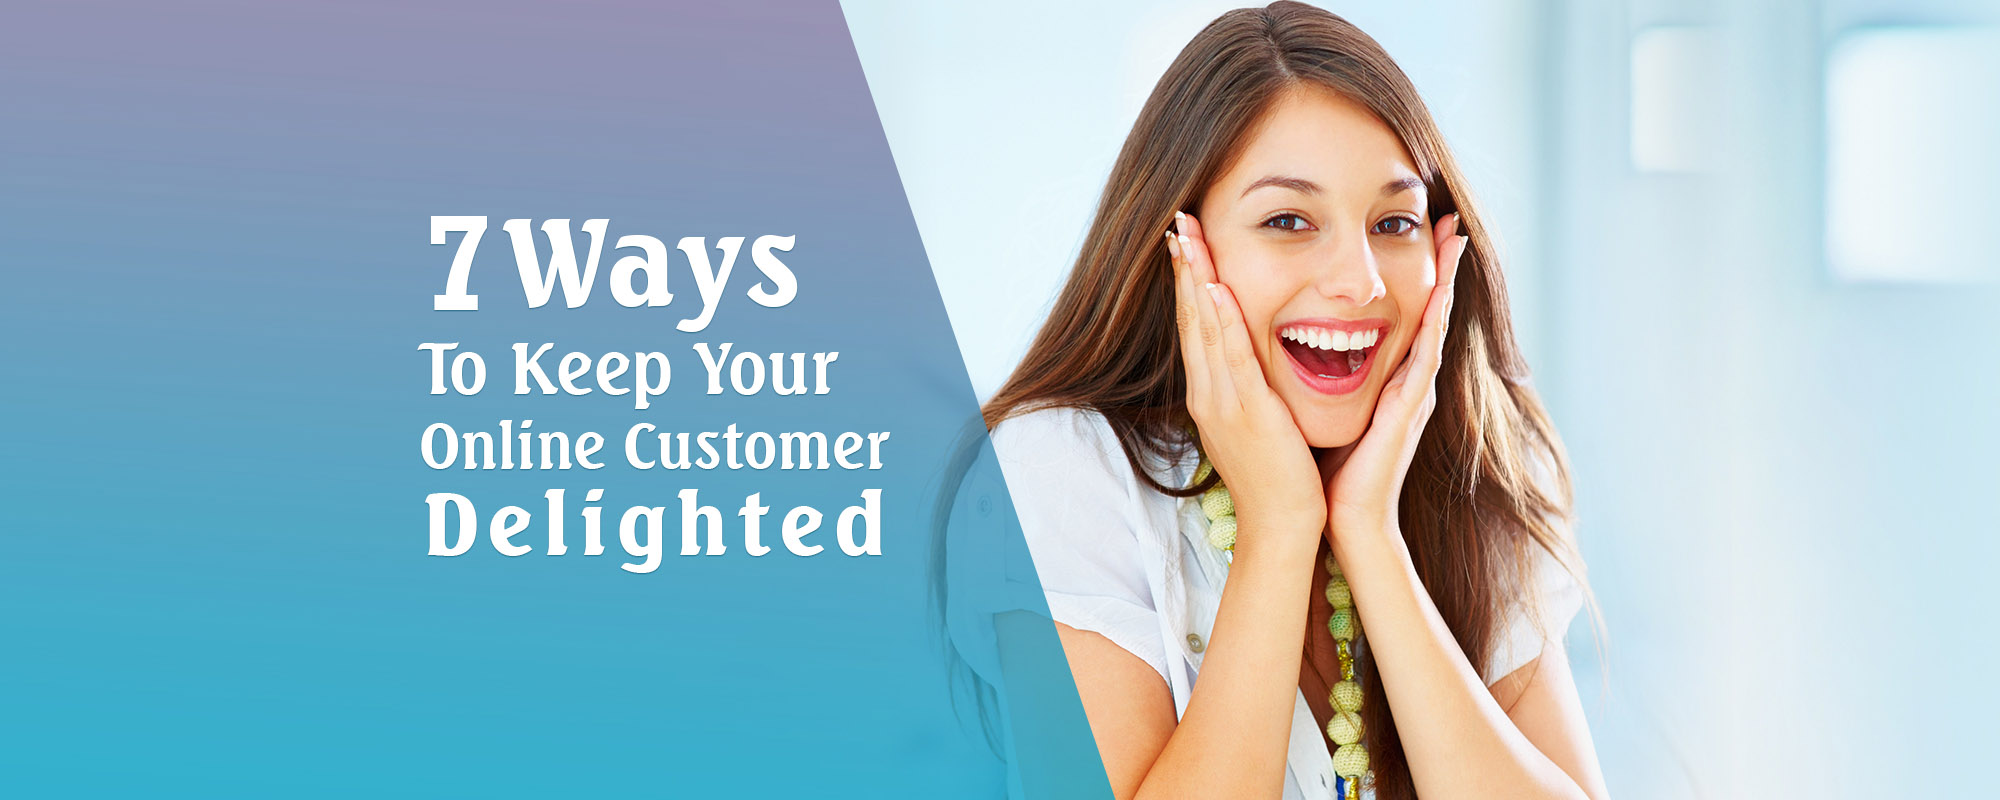 7 things You Must Know About Customer Delight In The Digital Era